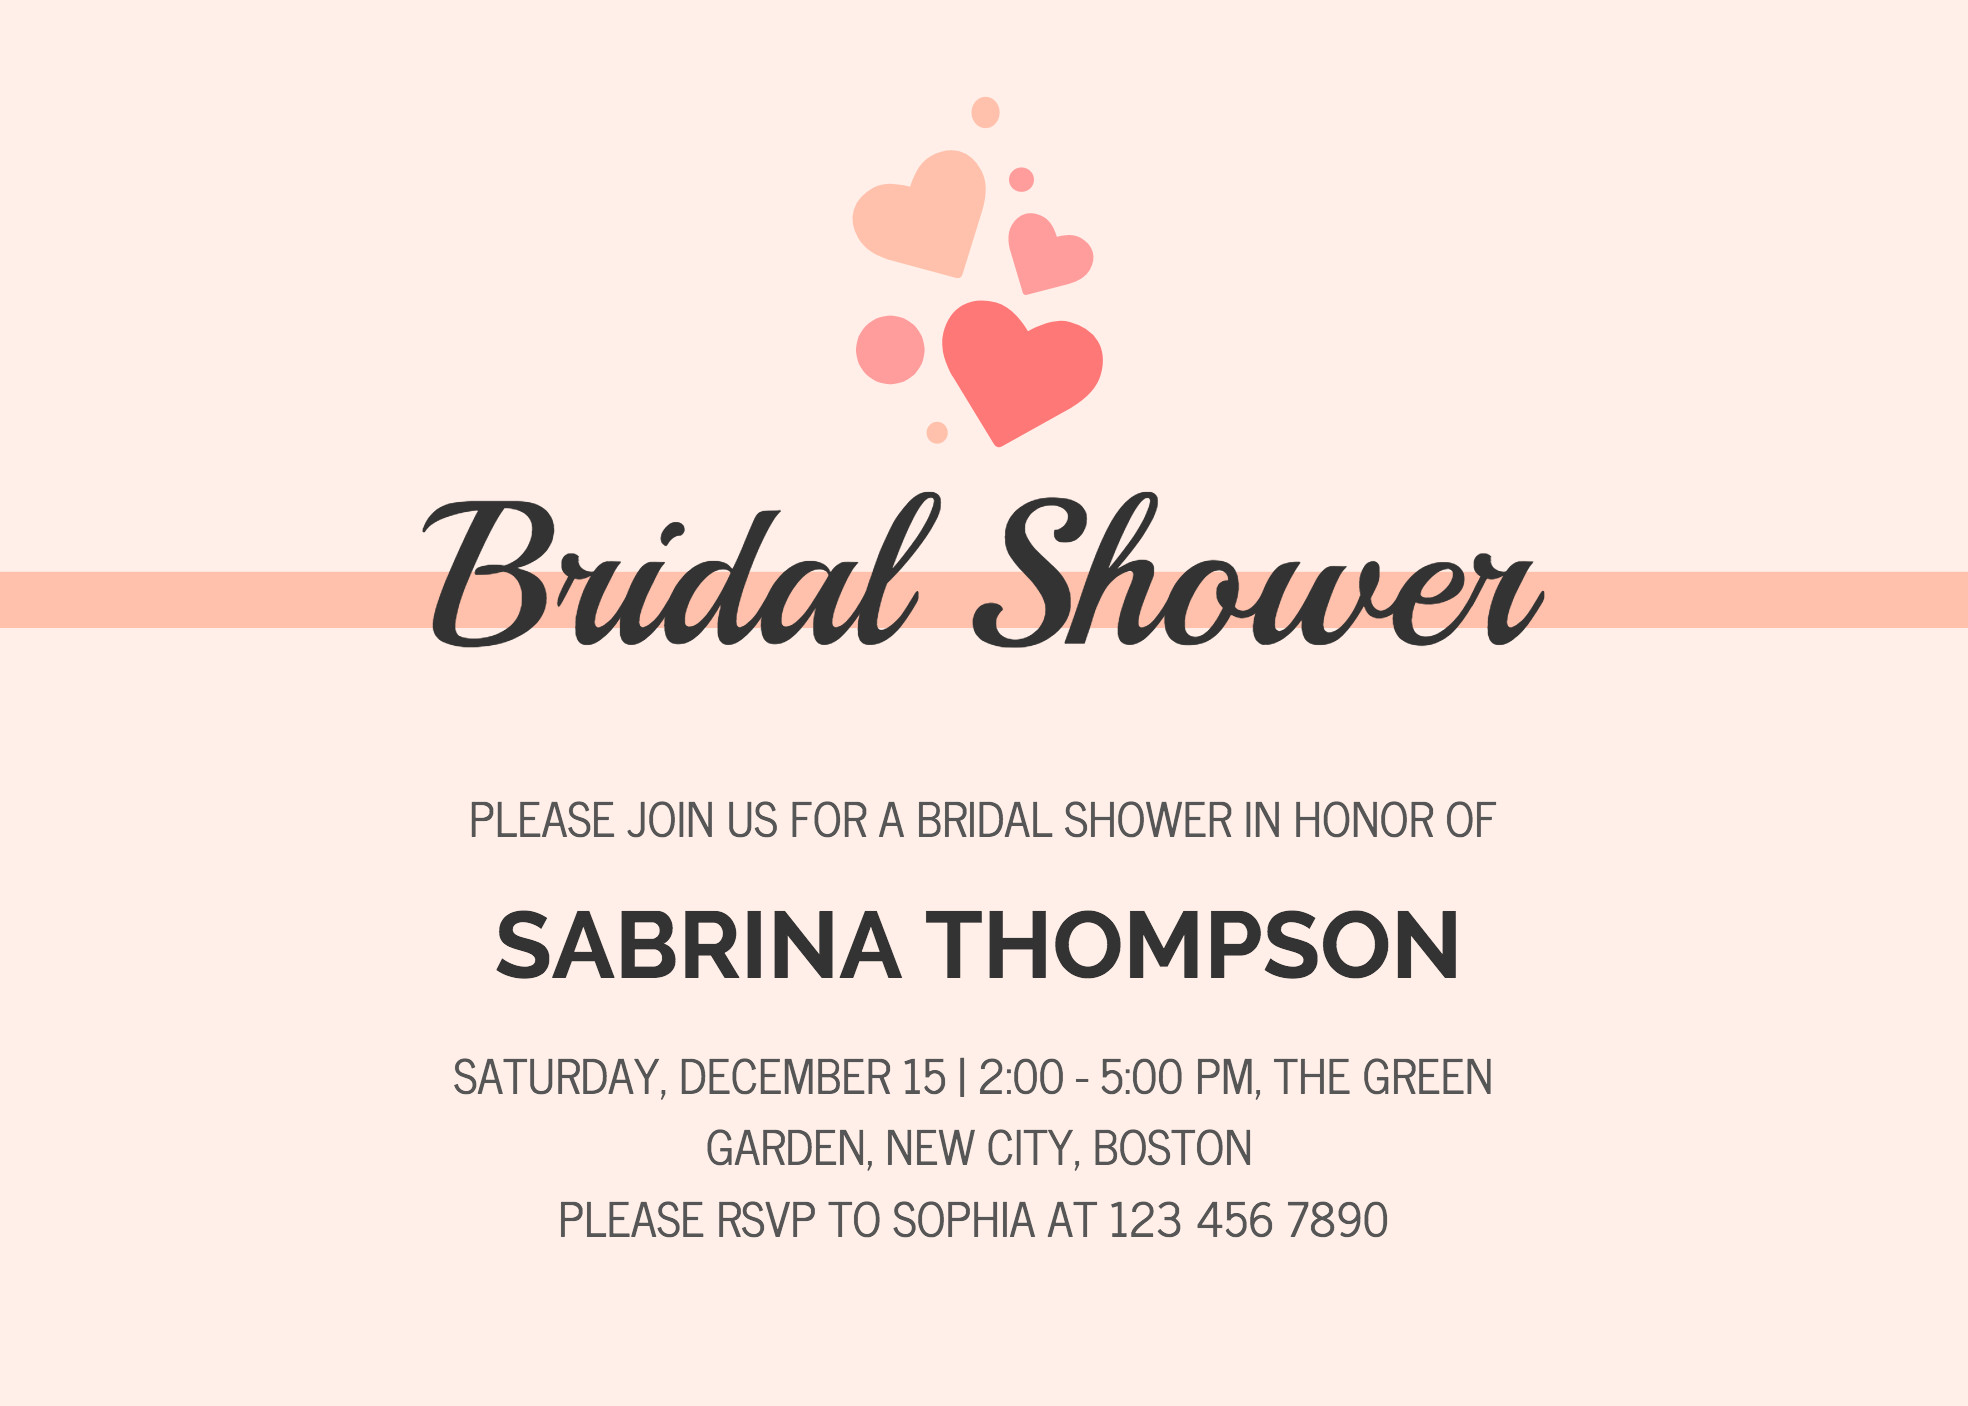 Wedding Shower Invite Templates 19 Diy Bridal Shower and Wedding Invitation Templates